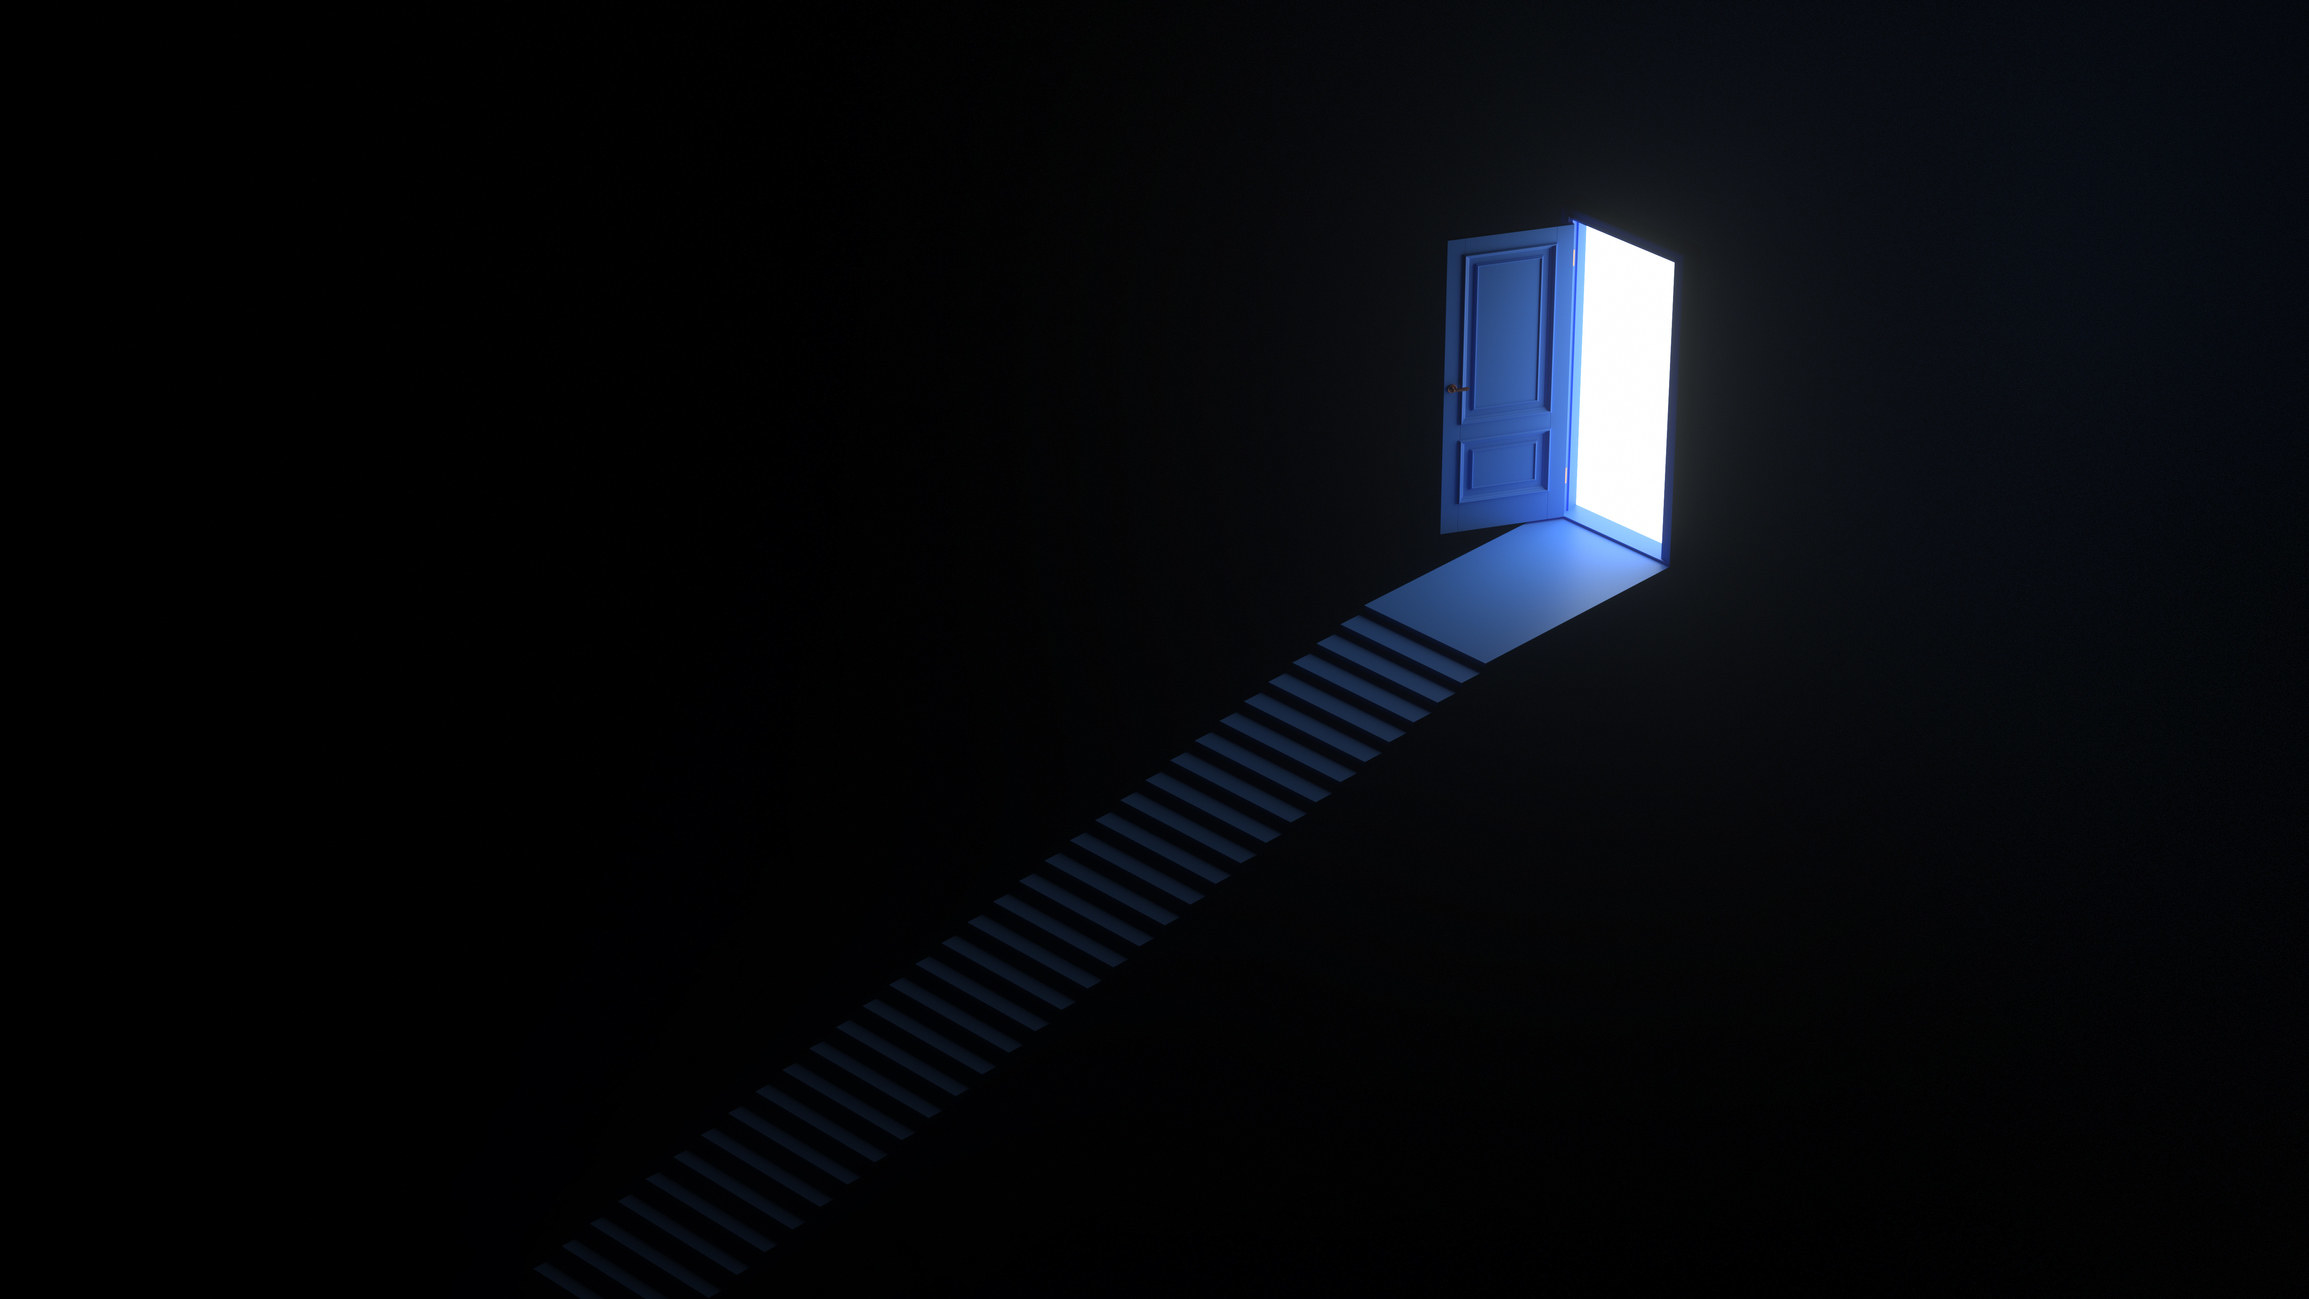 A stairway leading into darkness